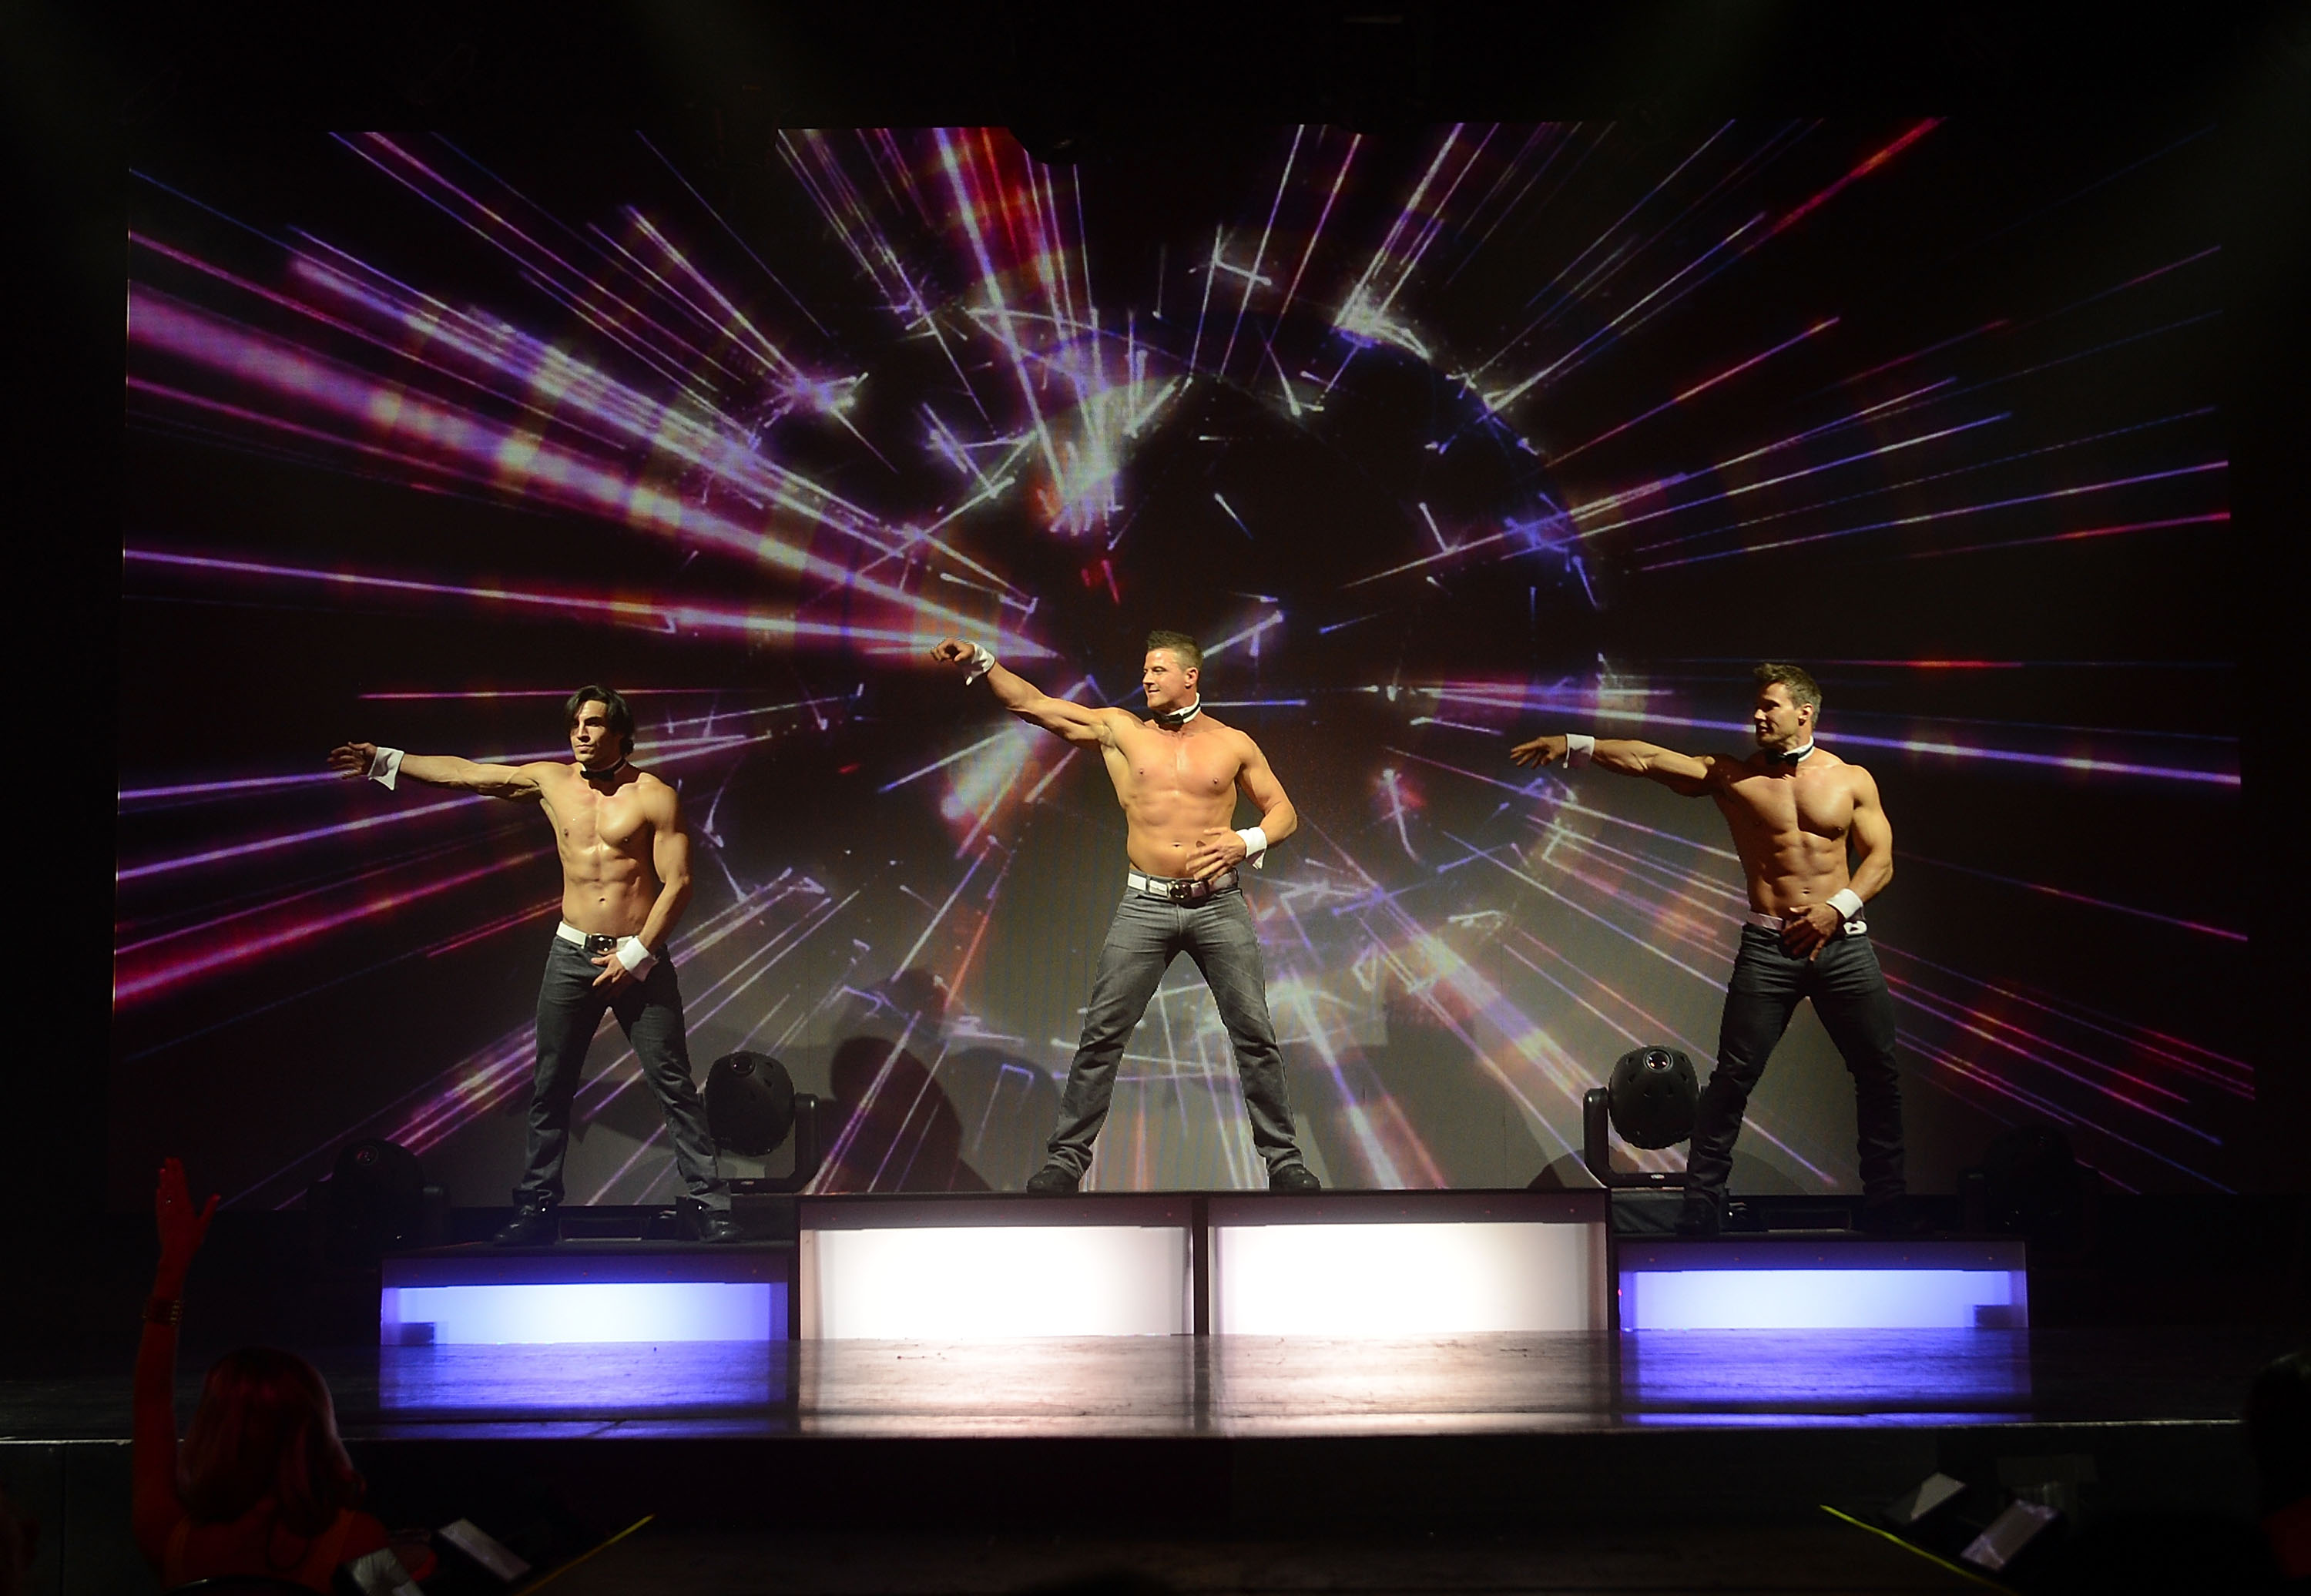 LAS VEGAS, NV - MAY 01: Chippendales performs at the Rio on May 1, 2015 in Las Vegas, Nevada. (Photo by Denise Truscello/WireImage)